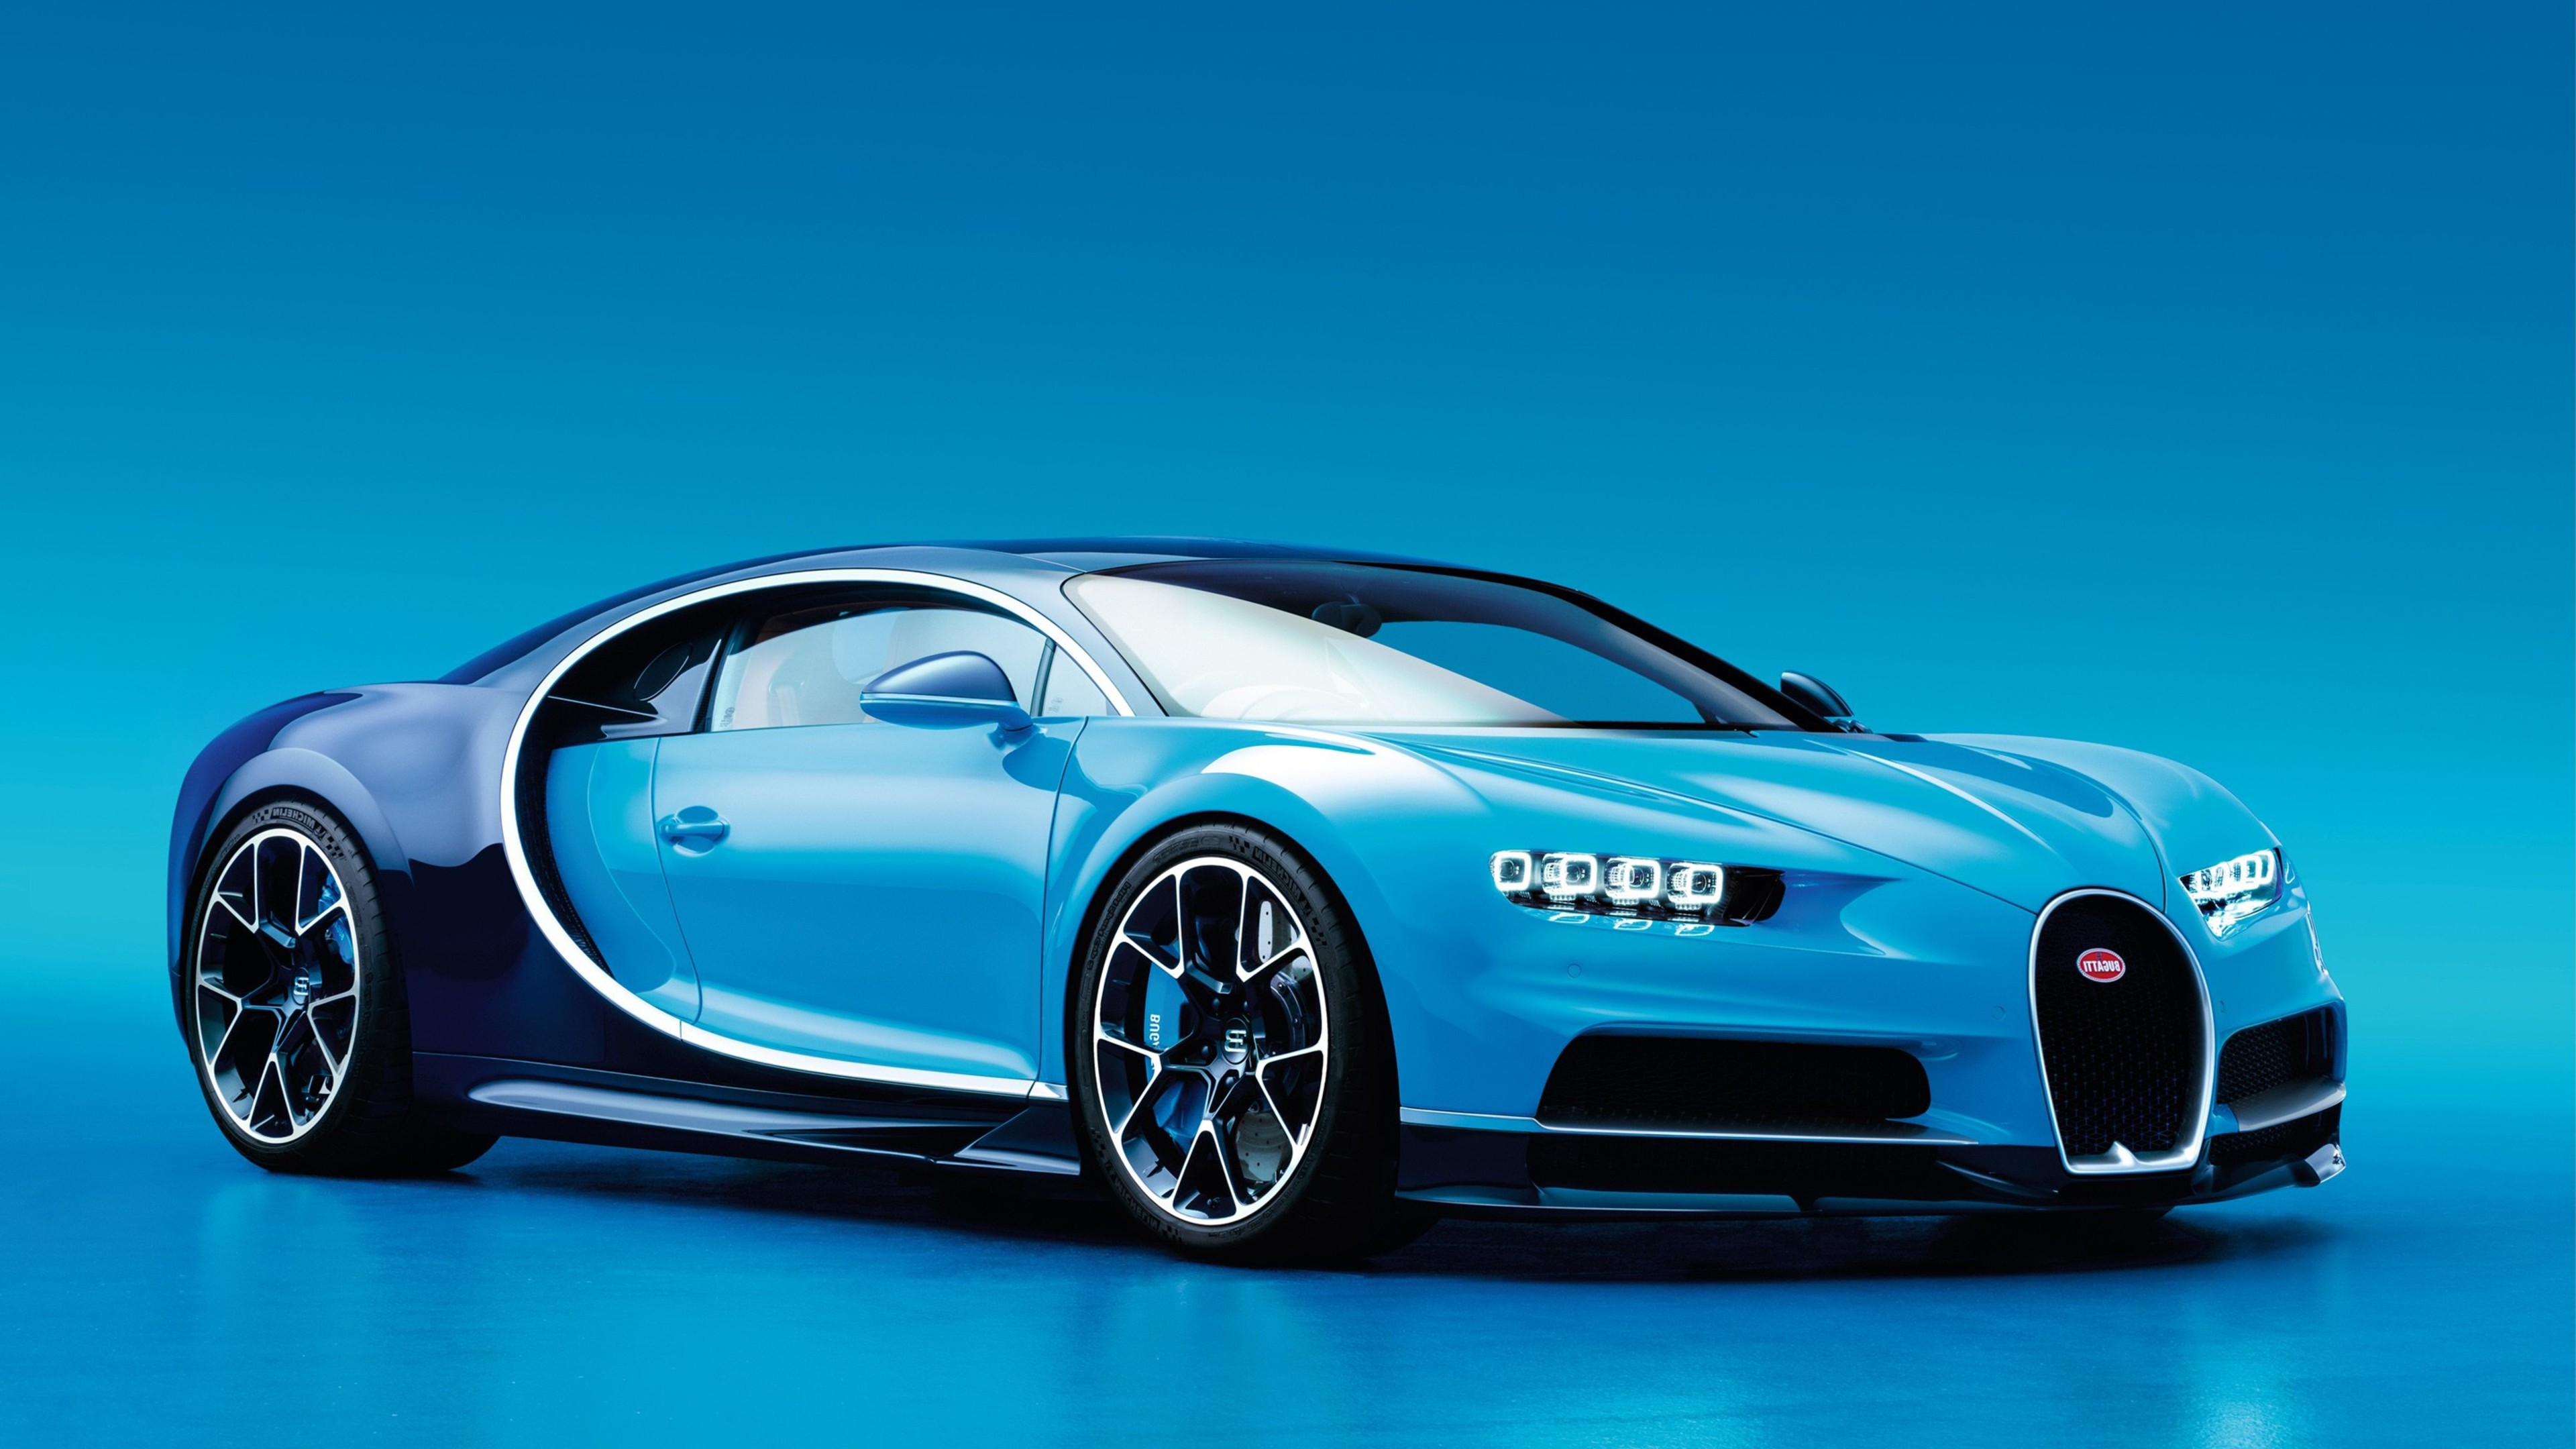 Bugatti Chiron 4k Blue 3840x2160 Download Hd Wallpaper Wallpapertip